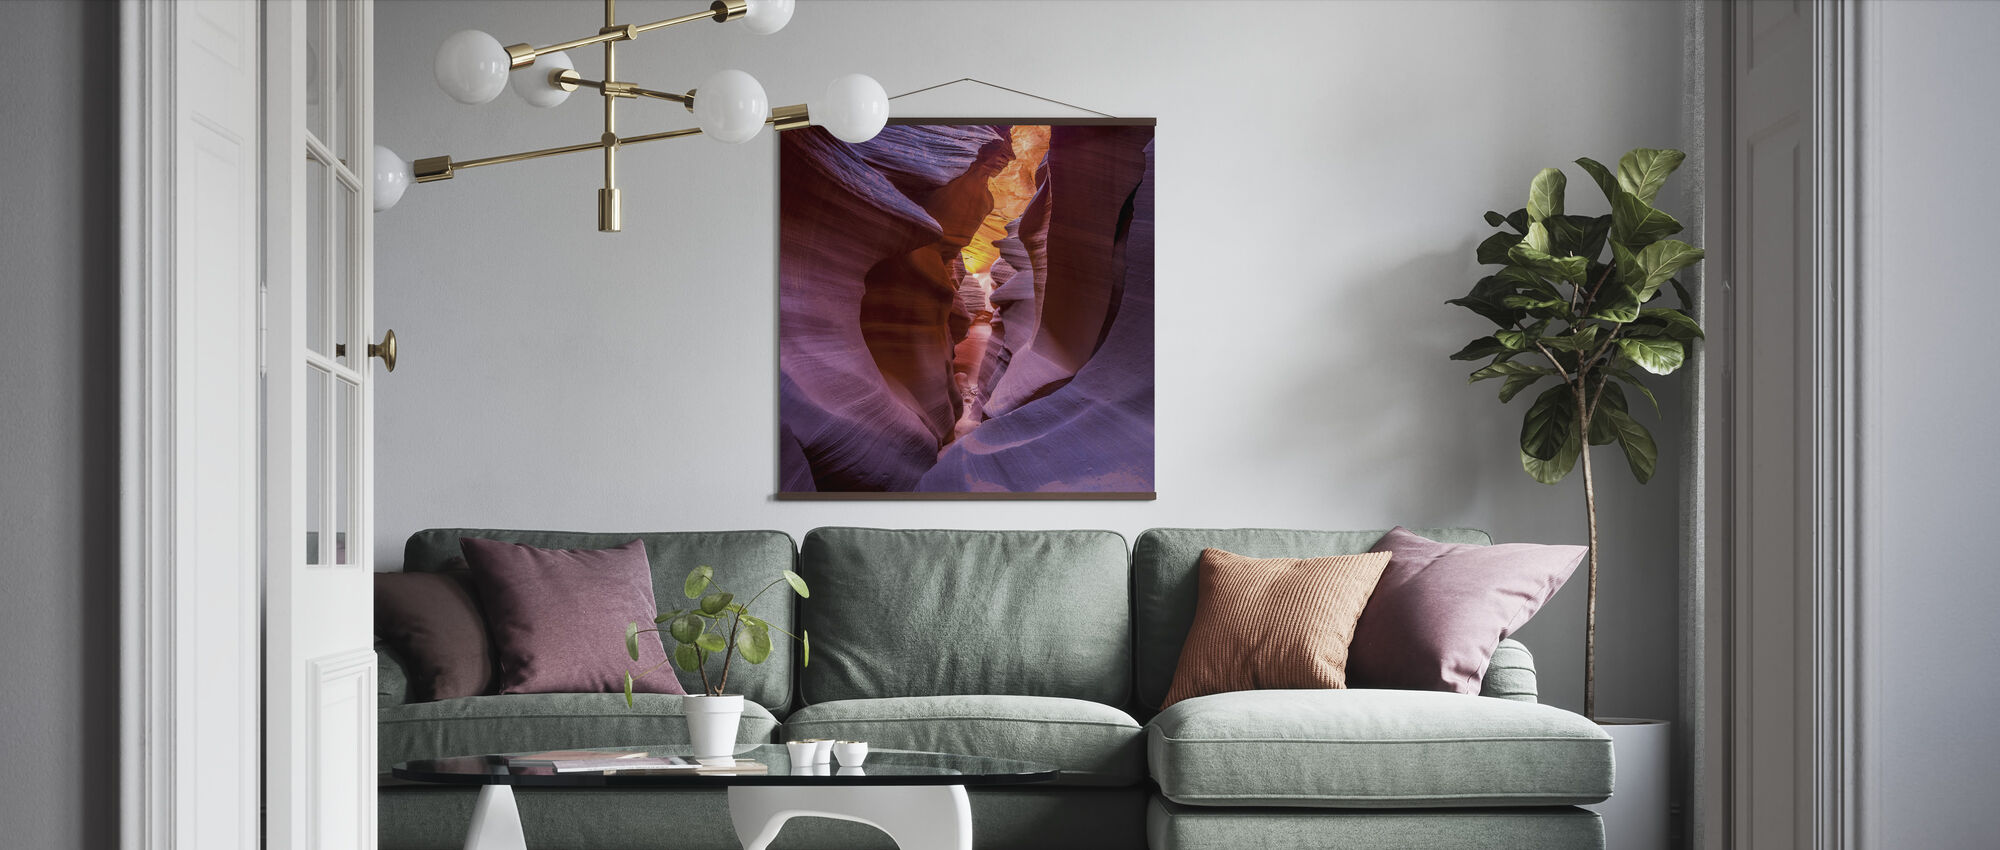 Fire in Canyon - Poster - Living Room